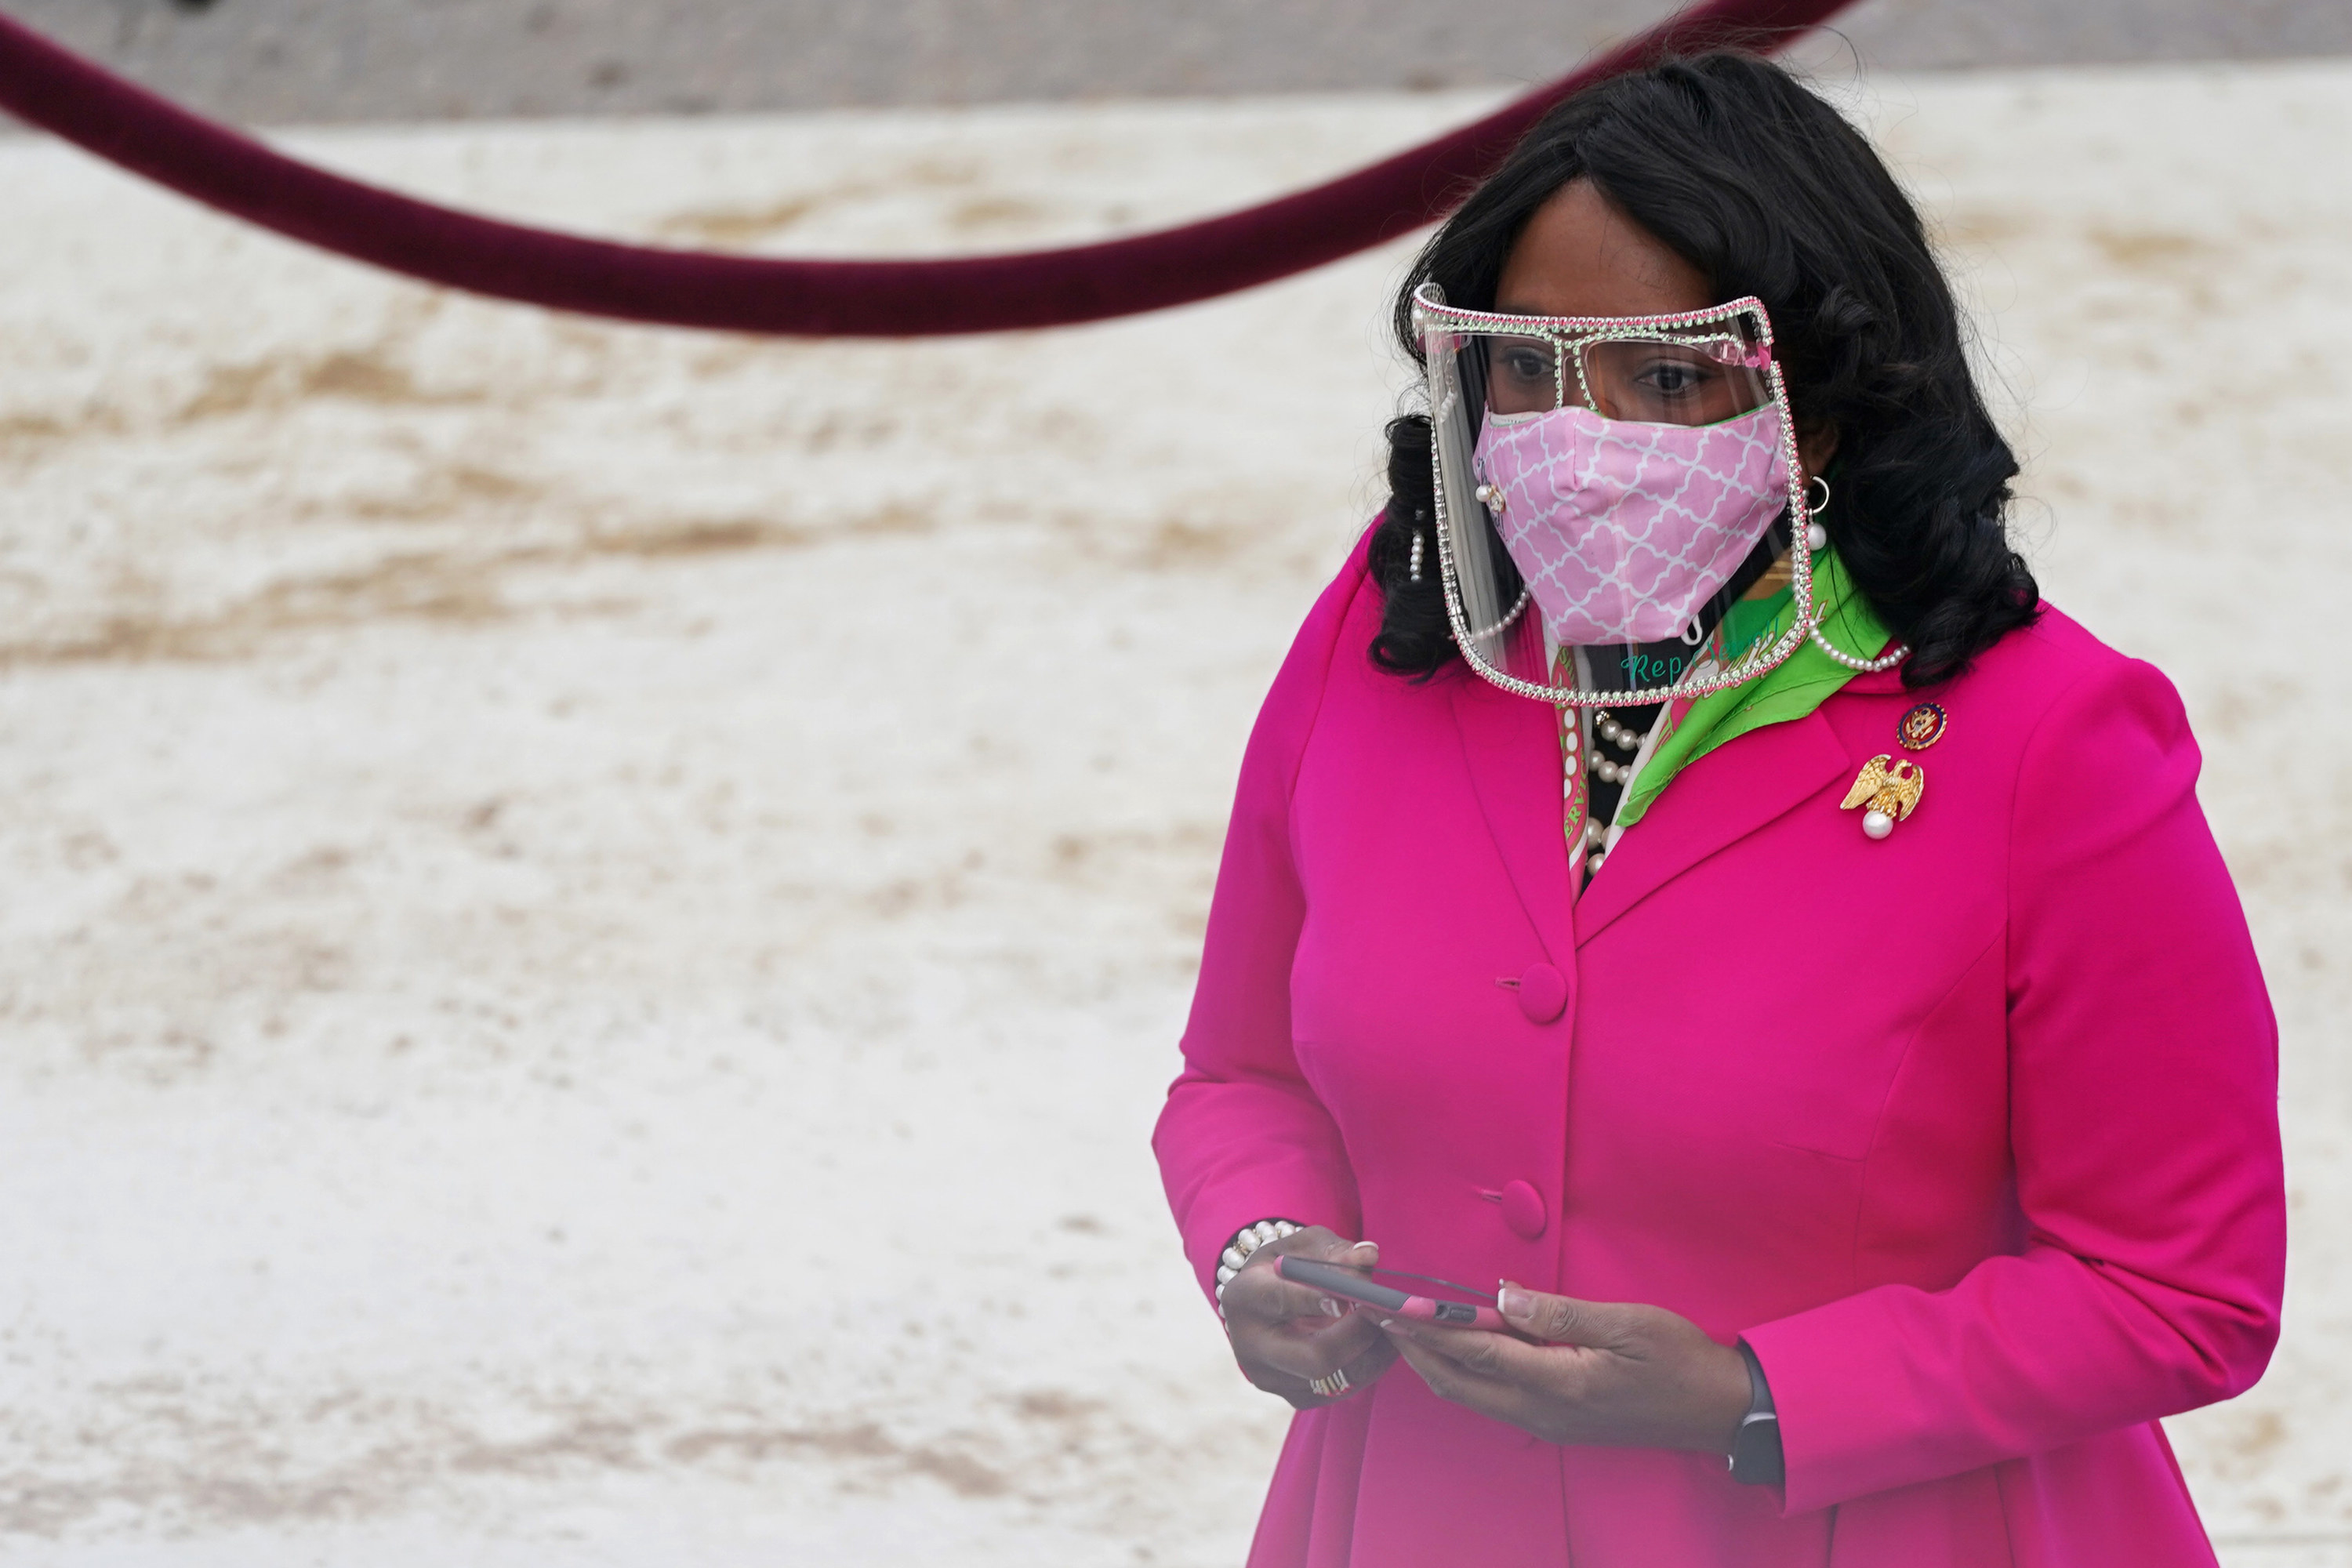 Rep. Terri Sewell in a pink coat, pearl-studded face shield and pink face mask at the inauguration.